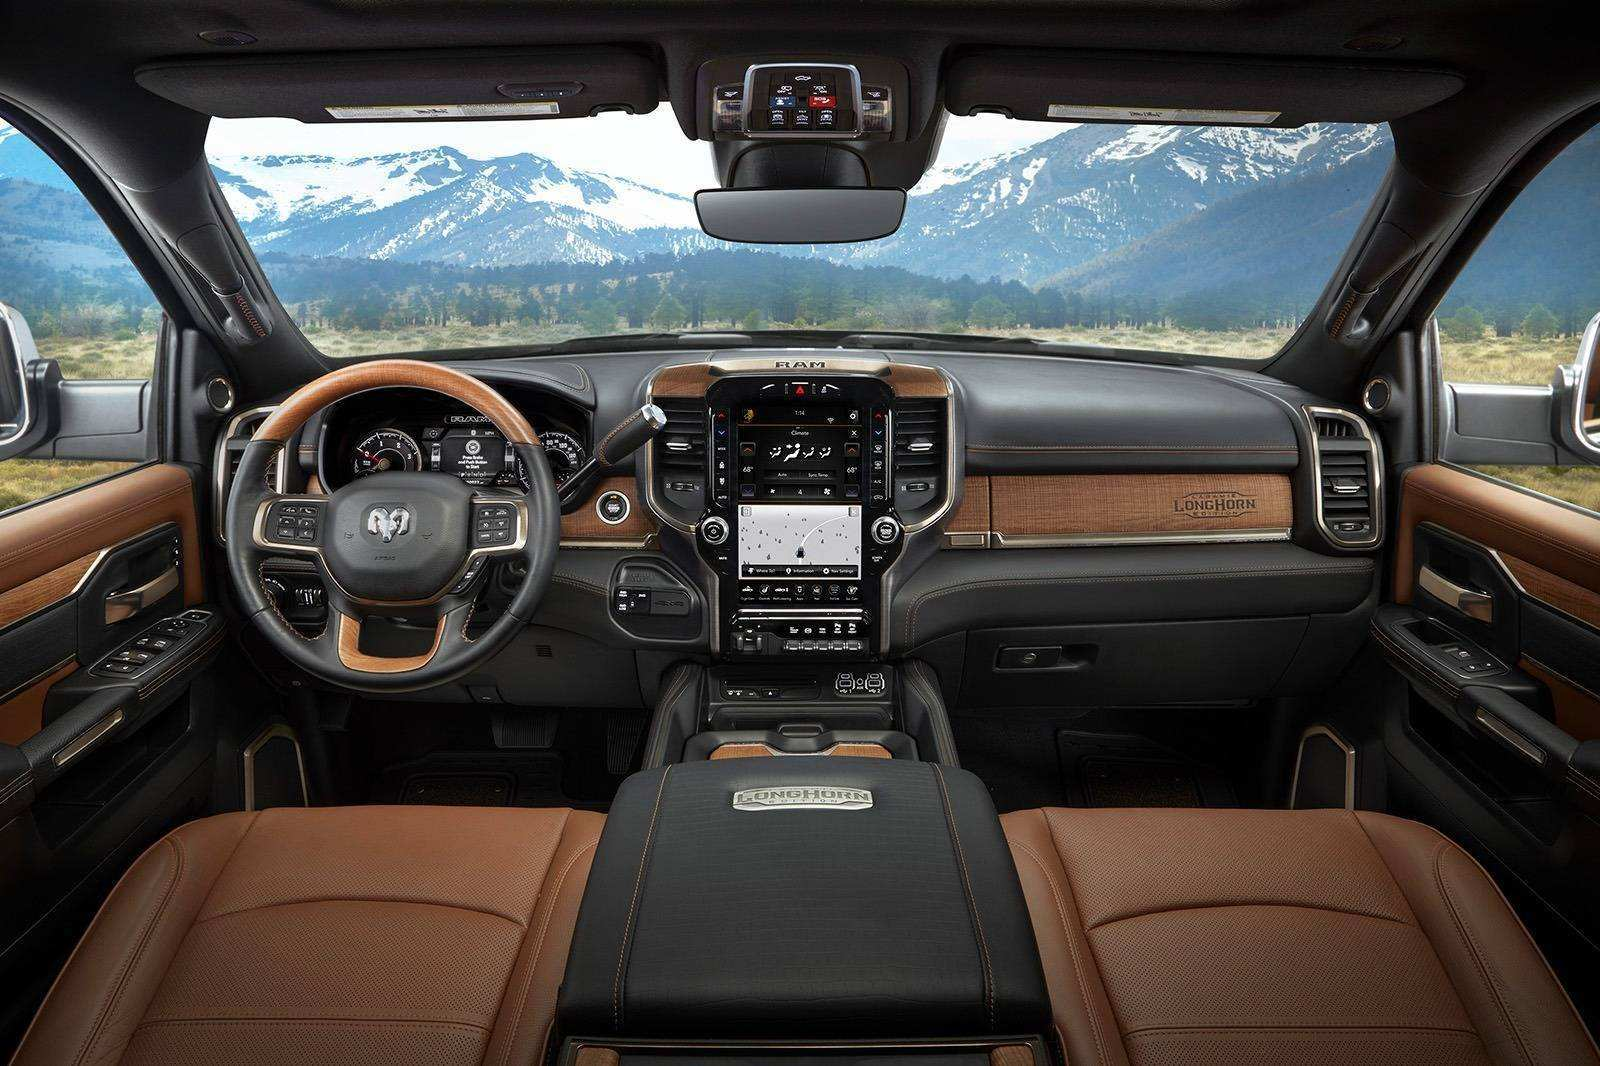 28 Gallery of New 2019 Dodge Mega Cab 2500 Review Release Date for New 2019 Dodge Mega Cab 2500 Review